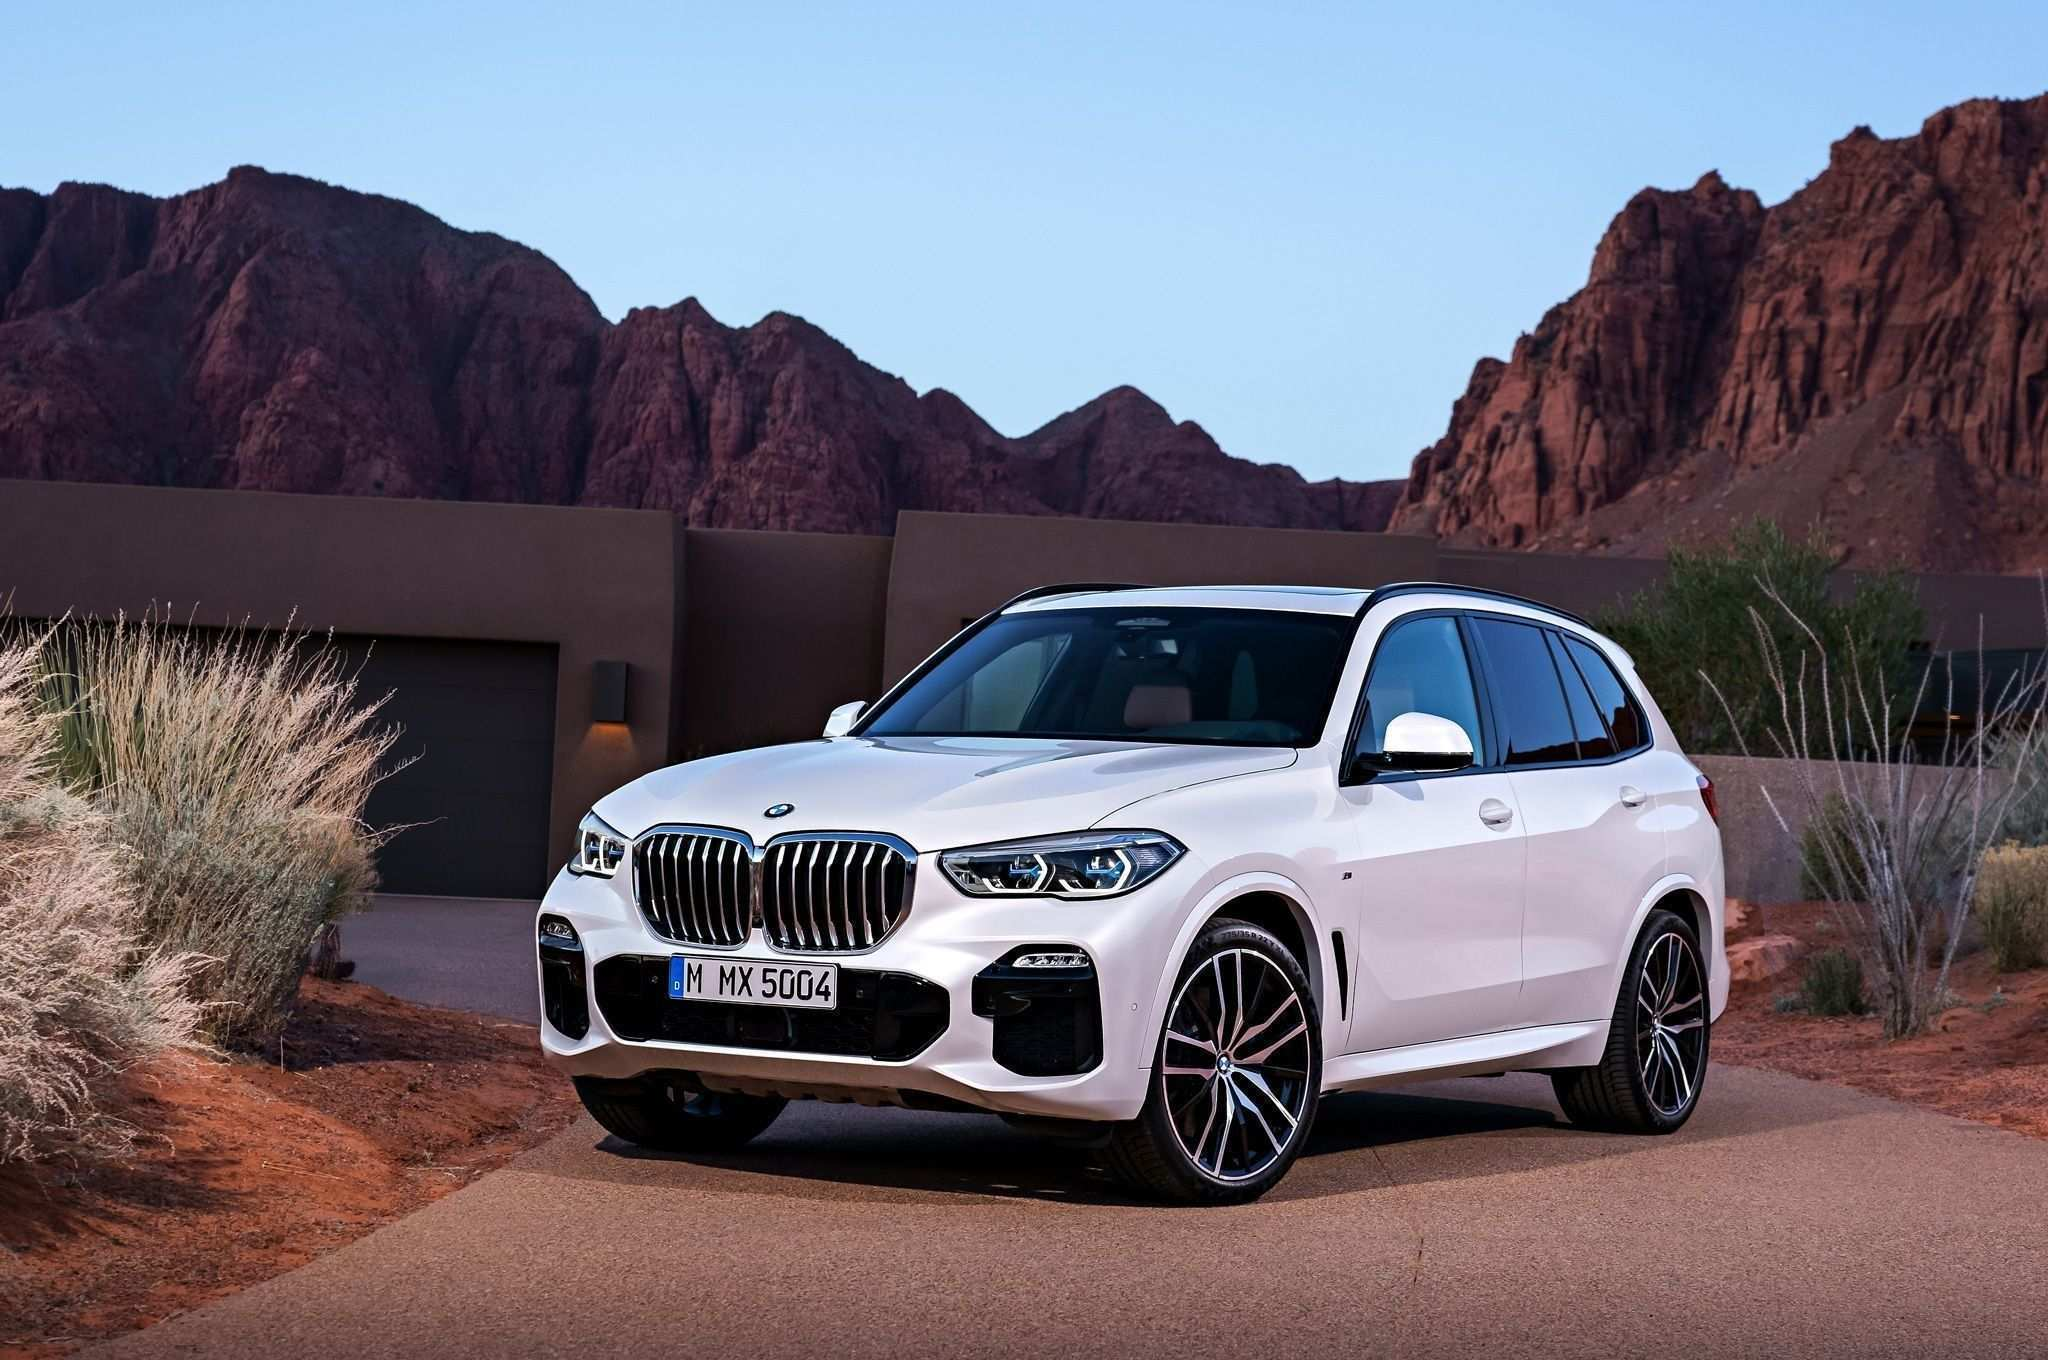 93 All New 2019 Bmw Pickup Colors Performance by 2019 Bmw Pickup Colors